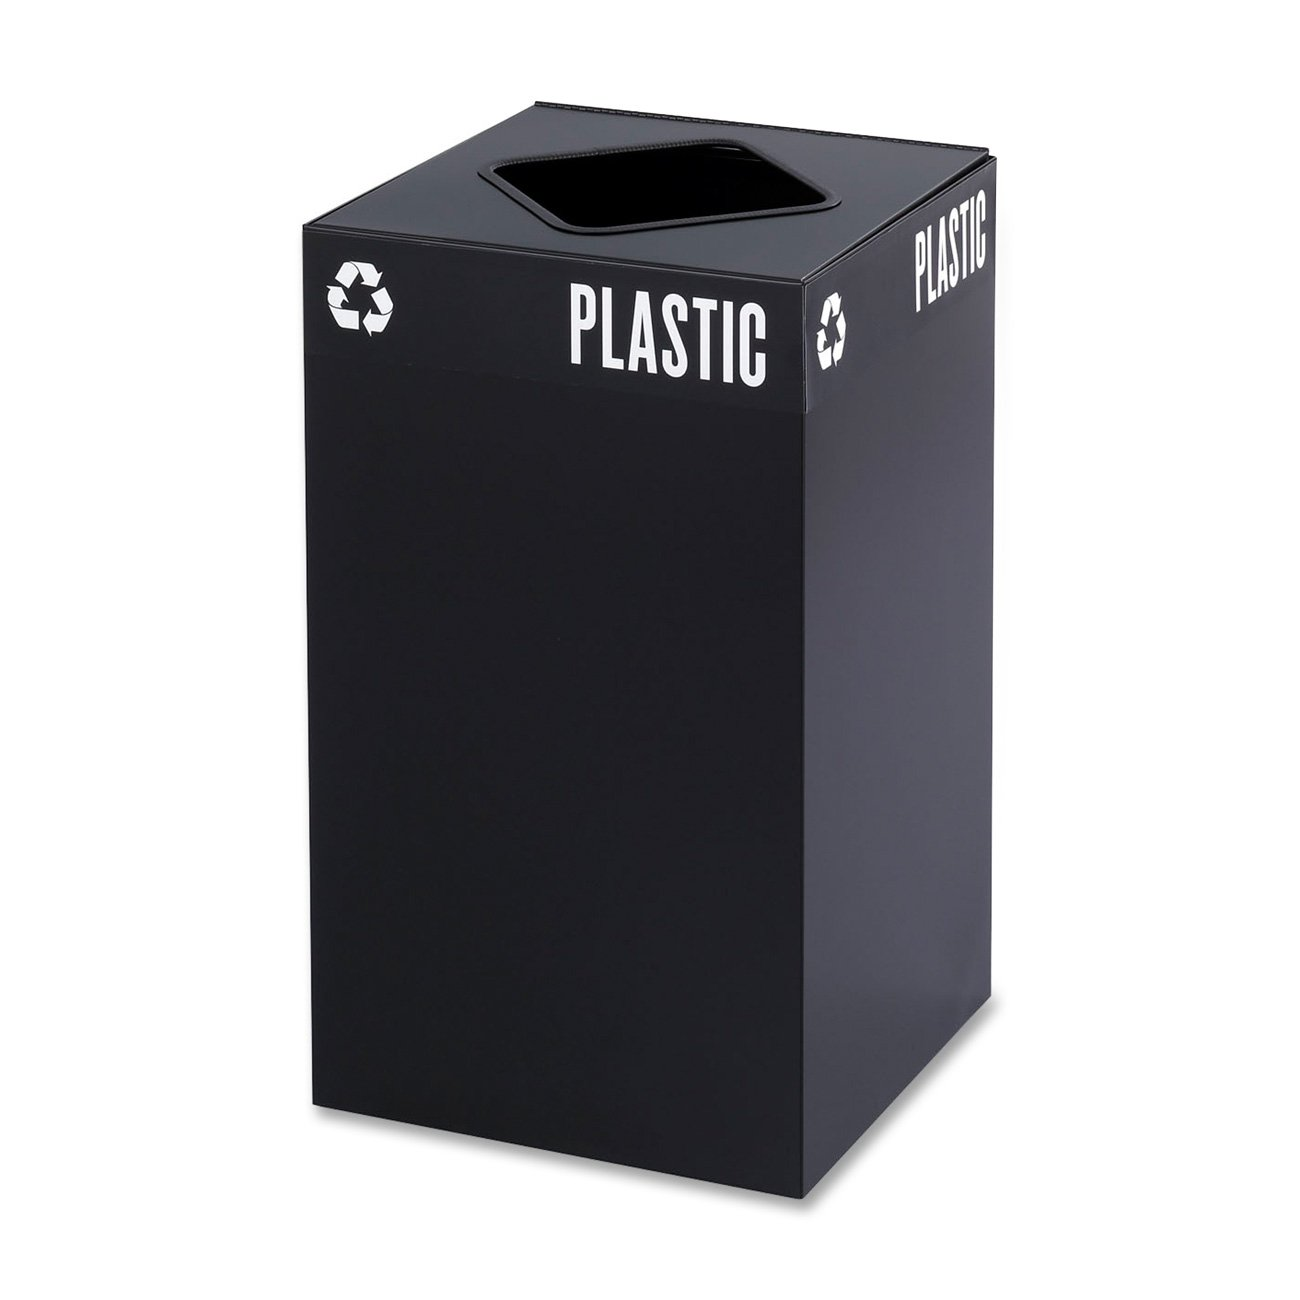 Safco Products 2981BL Public Square Recycling Trash Can Base, 25-Gallon, (Top sold separately), Black